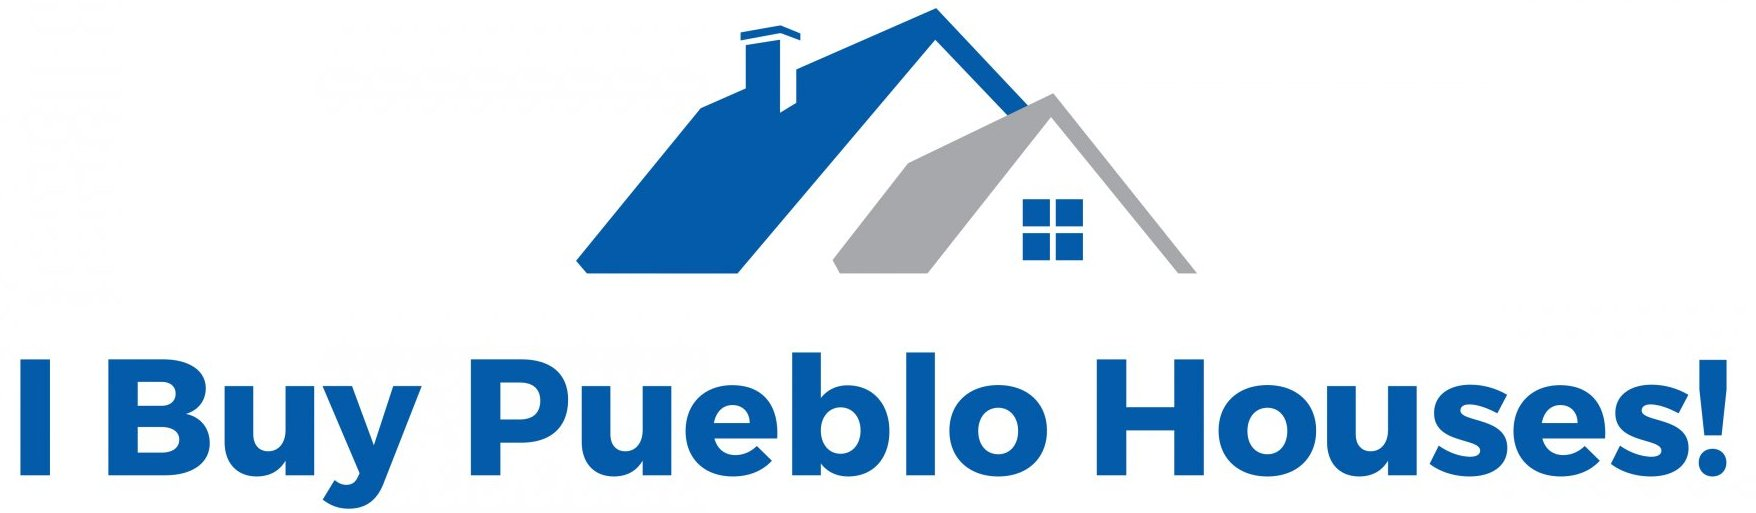 I Buy Pueblo Houses, the Reliable and Trustworthy Cash Home Buyers in Pueblo, CO Offers Various Dependable House Selling and Buying Services